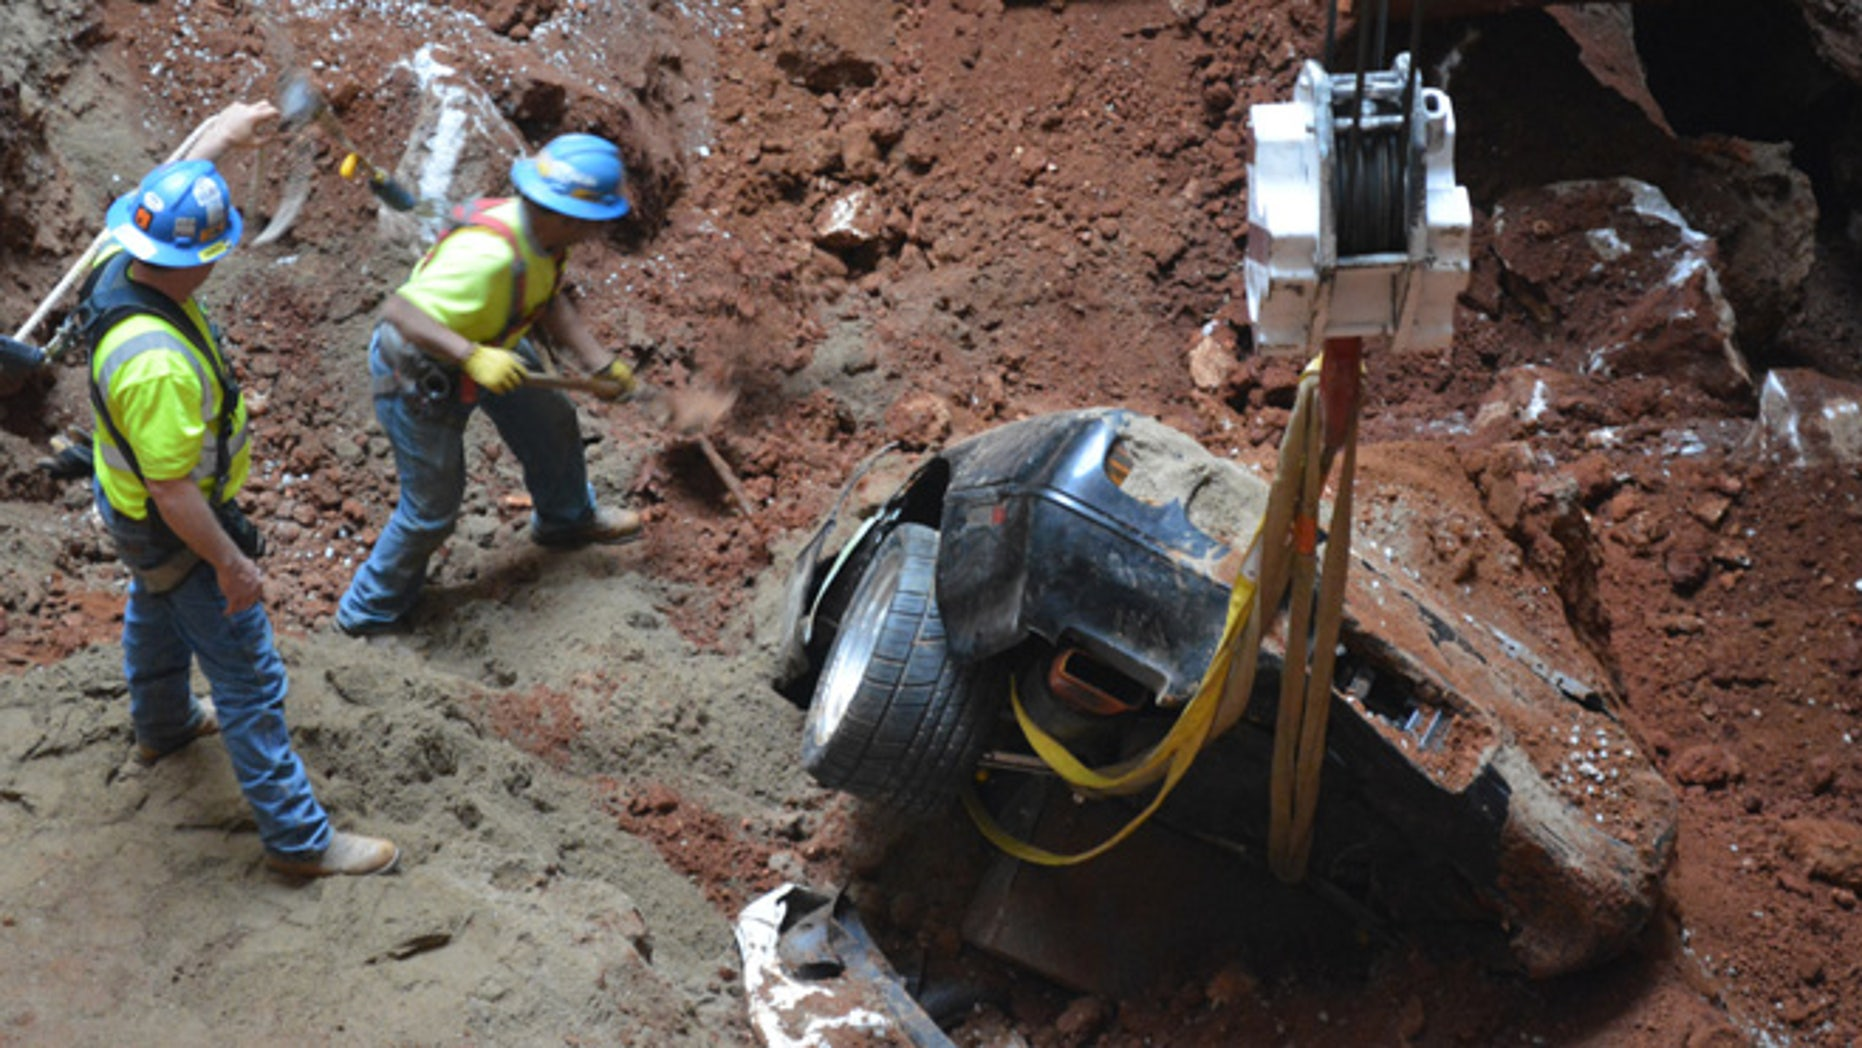 In this undated photo provided by the National Corvette Museum, workers pull out a car from a sinkhole at the National Corvette Museum, in Bowling Green, Ky.